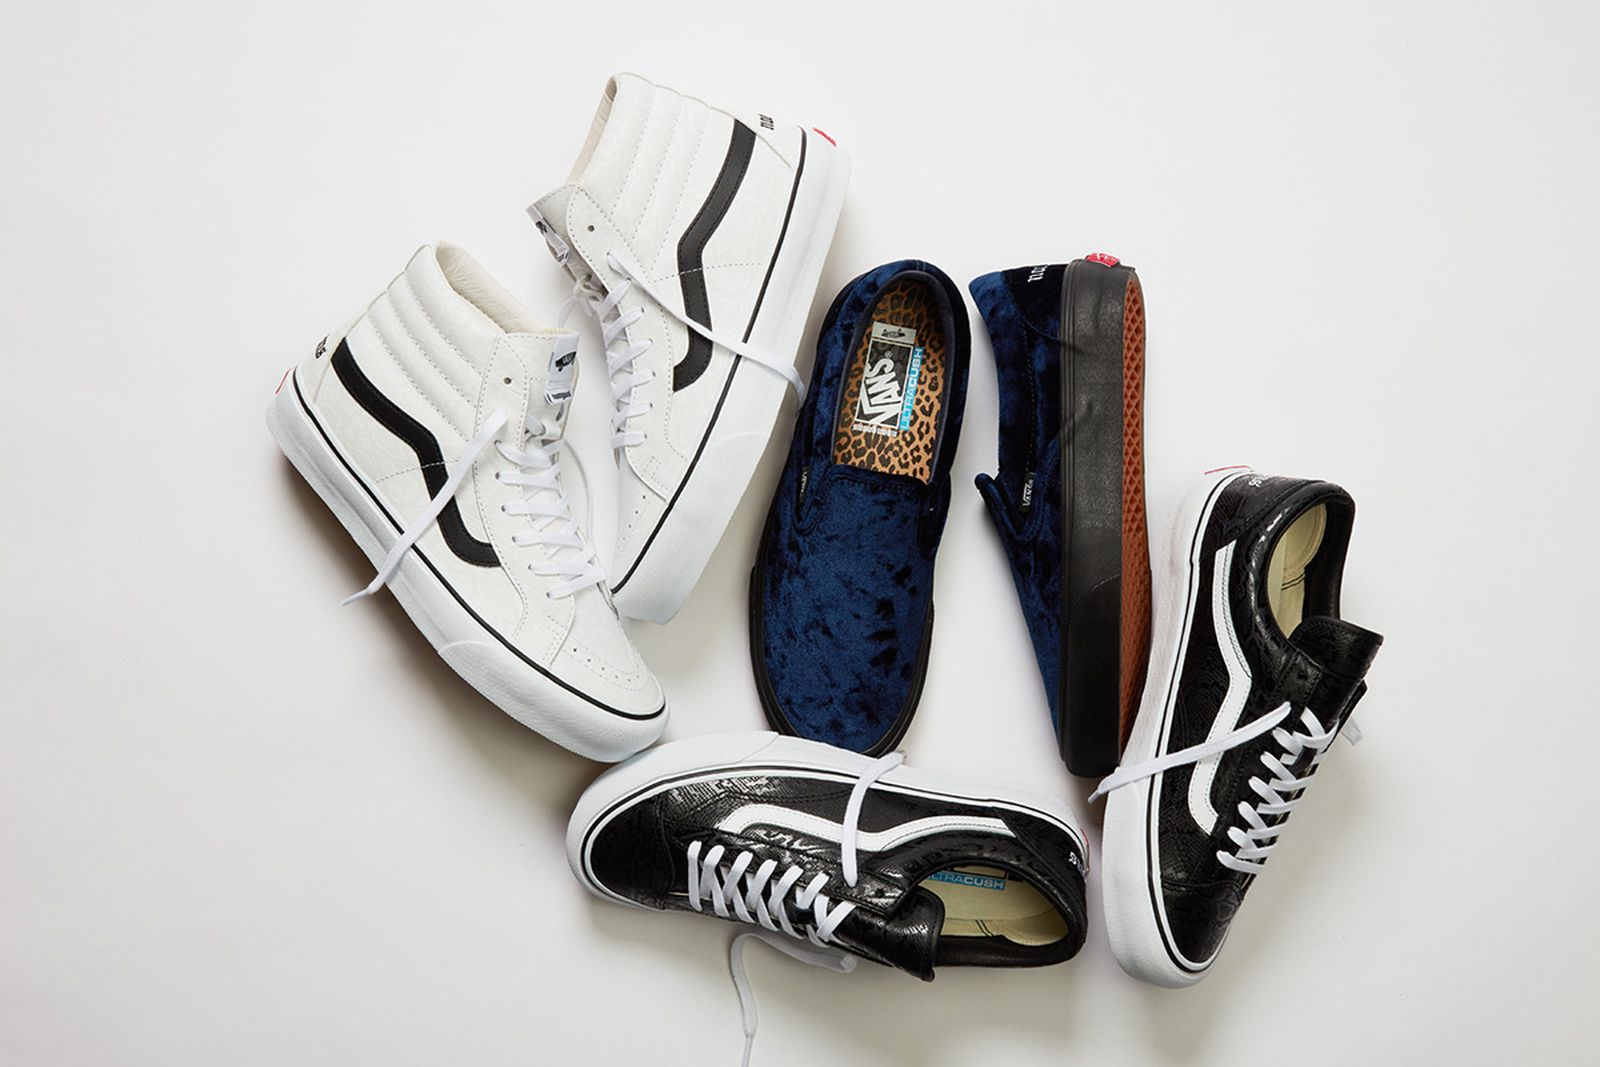 noon-goons-vault-by-vans-collection-release-info-01